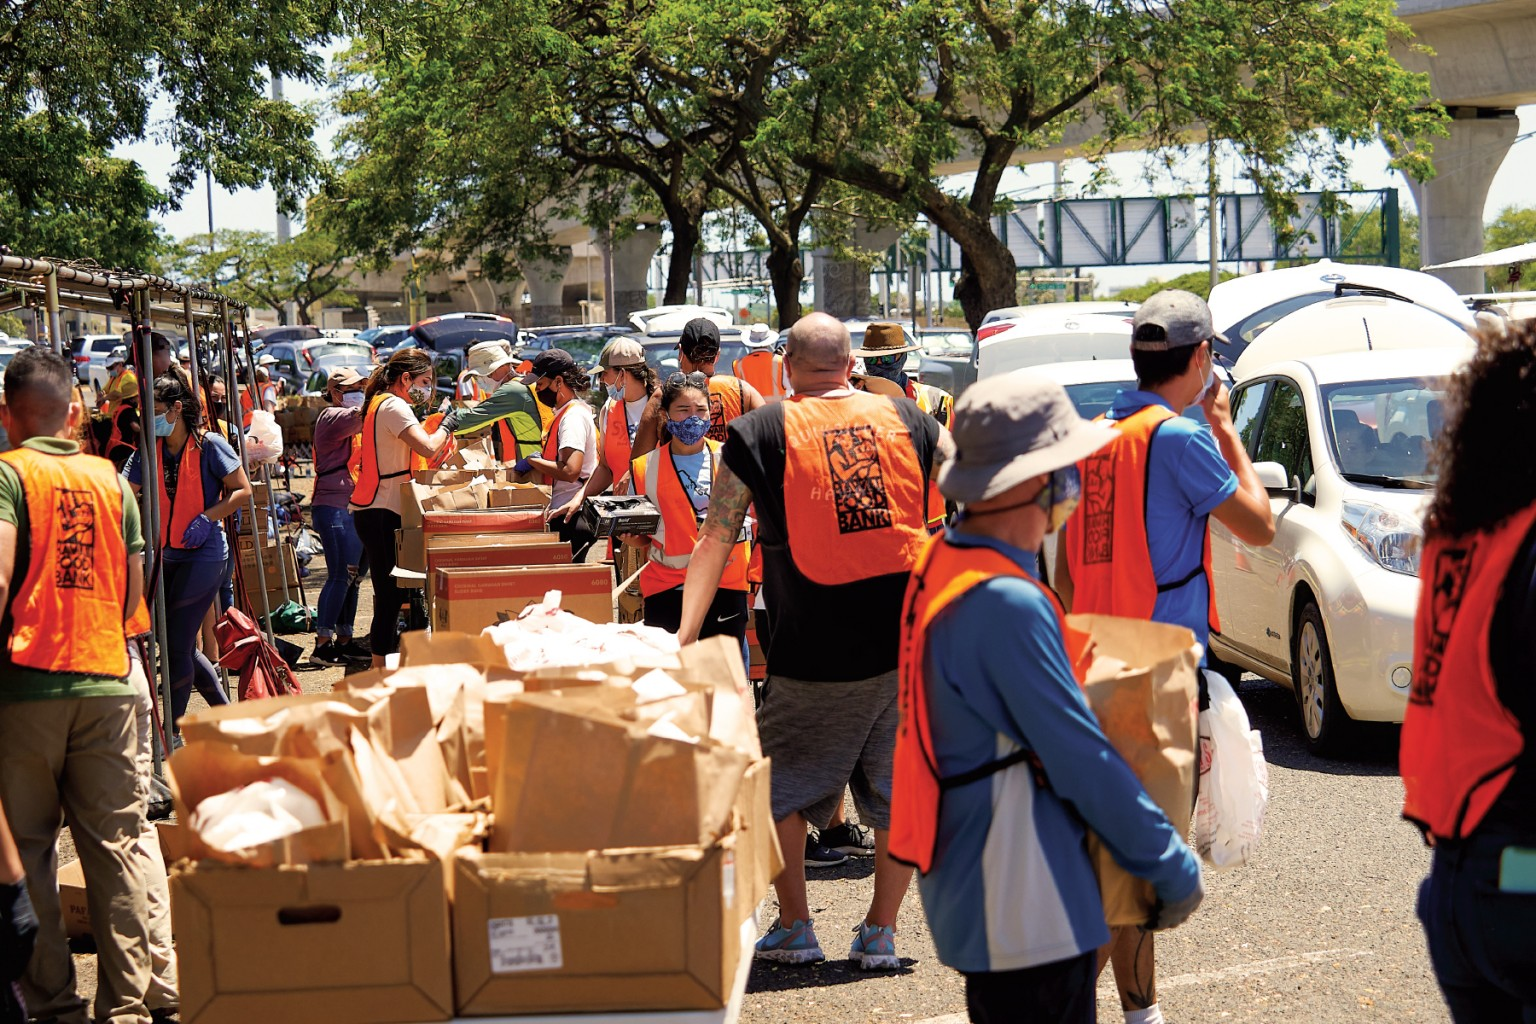 Rated One of Hawaii's Most Charitable Companies by Hawaii Business News